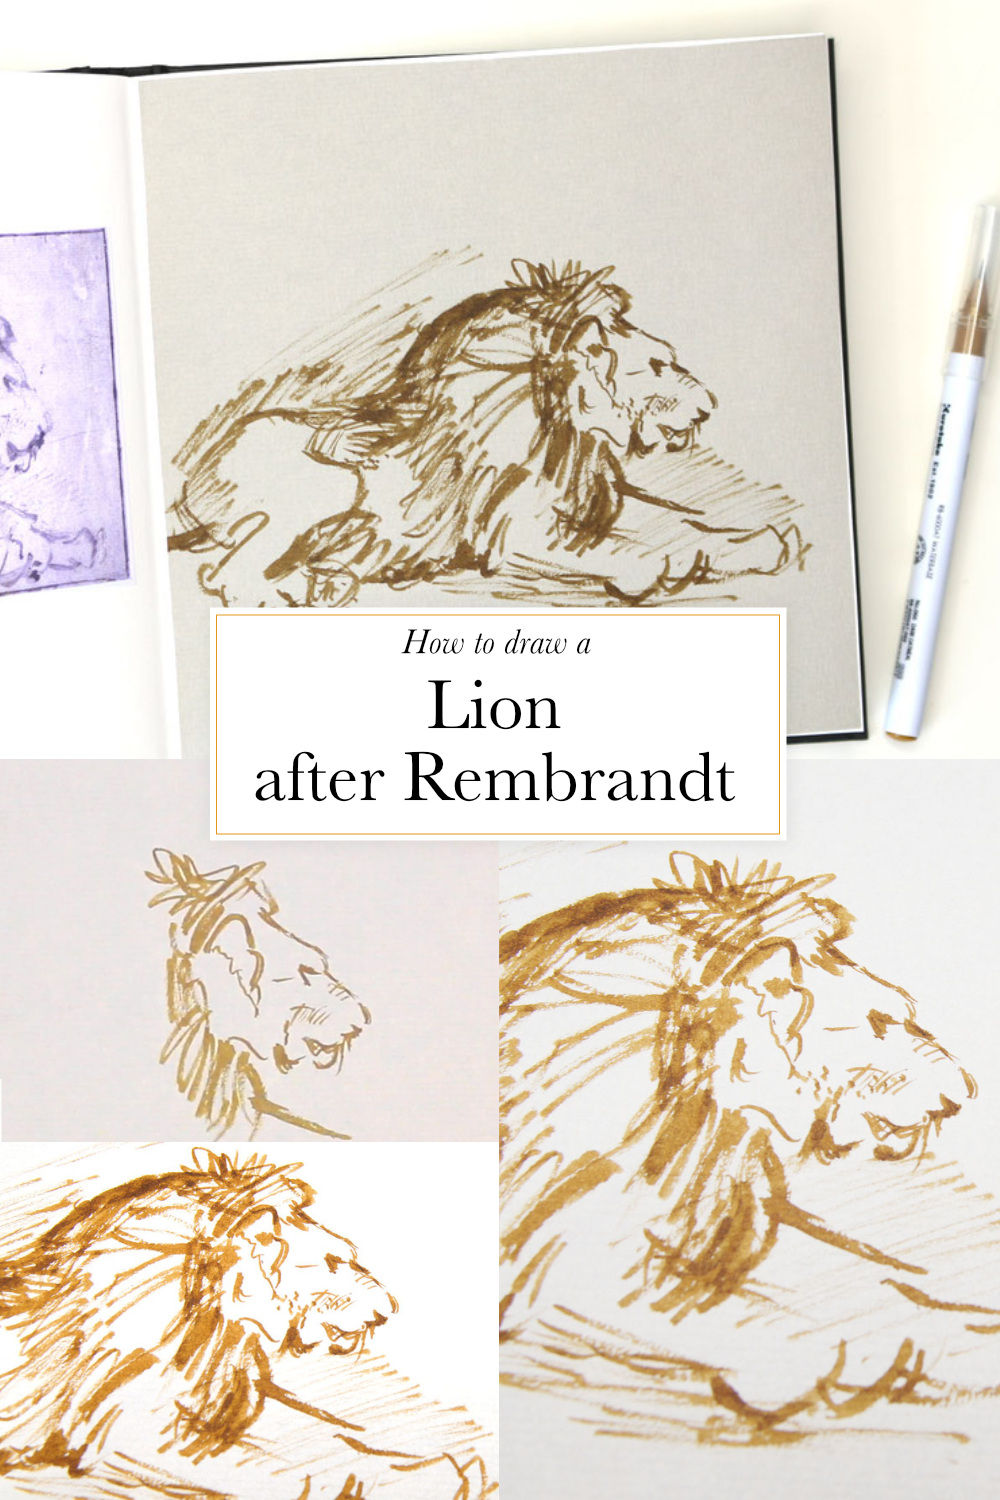 How to draw a lion after Rembrandt in my sketchbook  | by The Daily Atelier